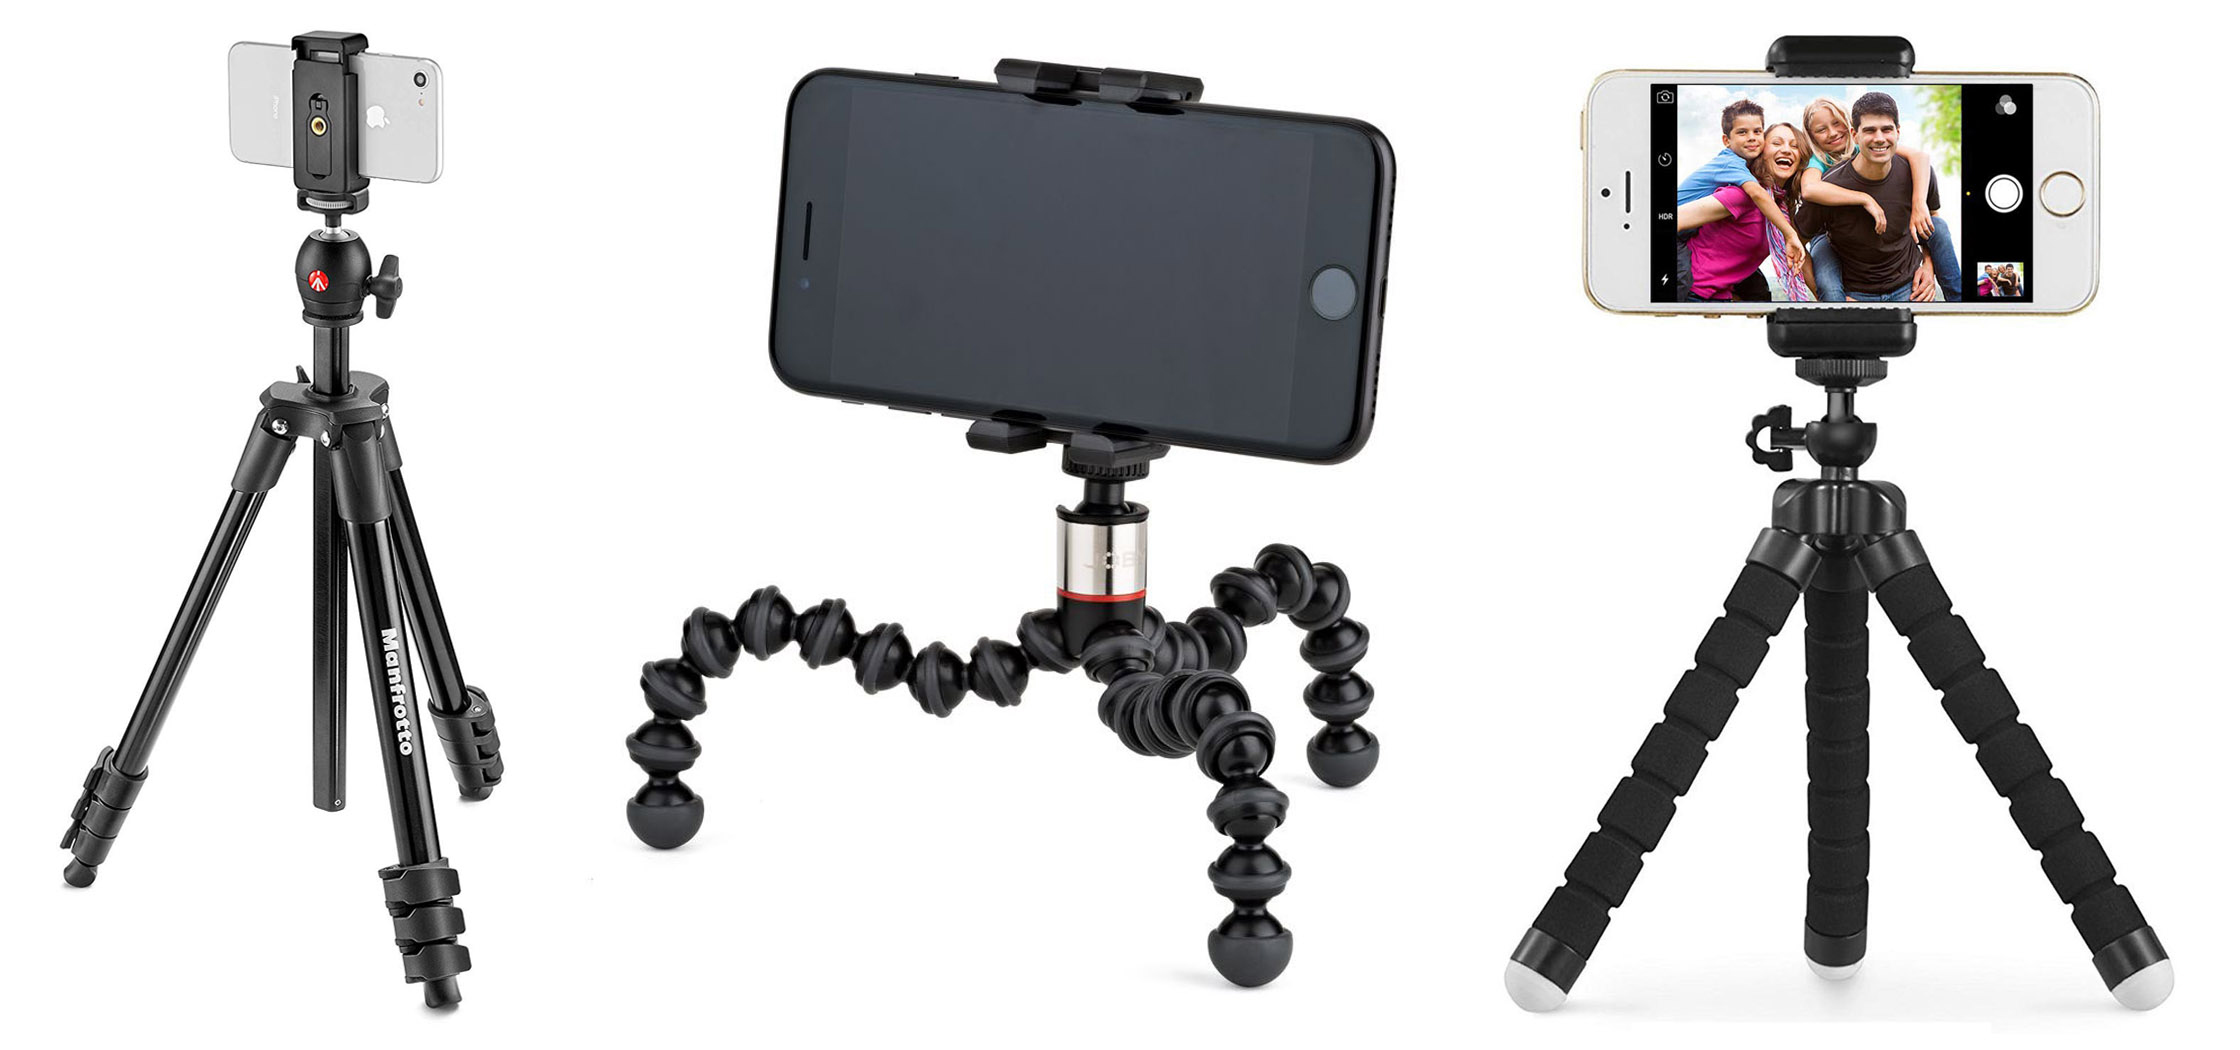 new products 6fb45 60726 iPhone Tripod Comparison: Pick The Best iPhone Tripod For You